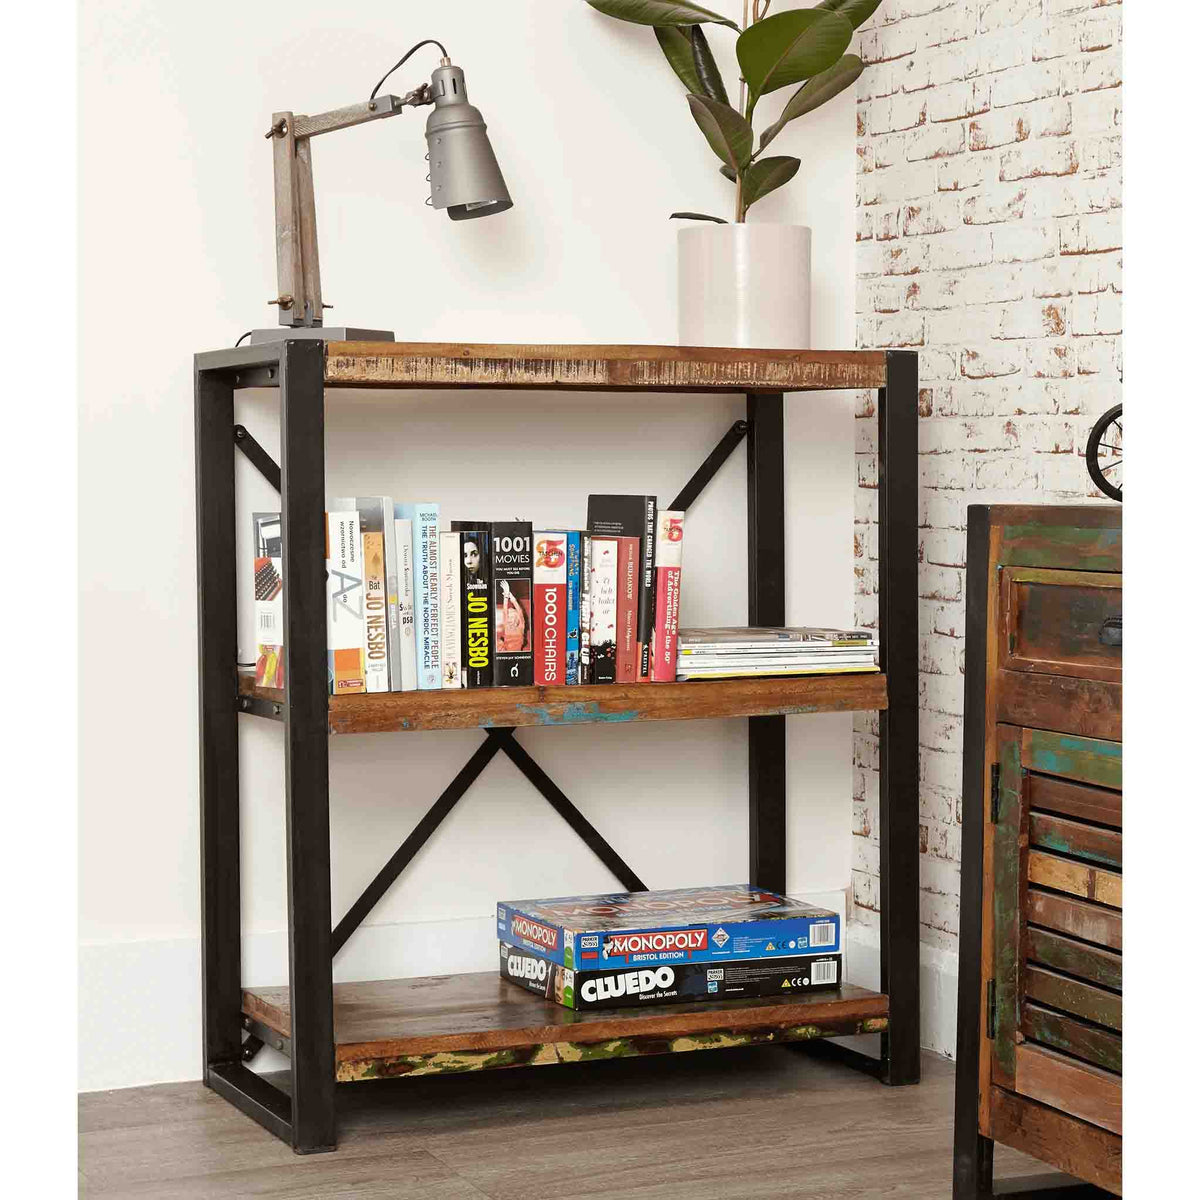 The Urban Chic Industrial Reclaimed Wood Low Bookshelf from Roseland Furniture